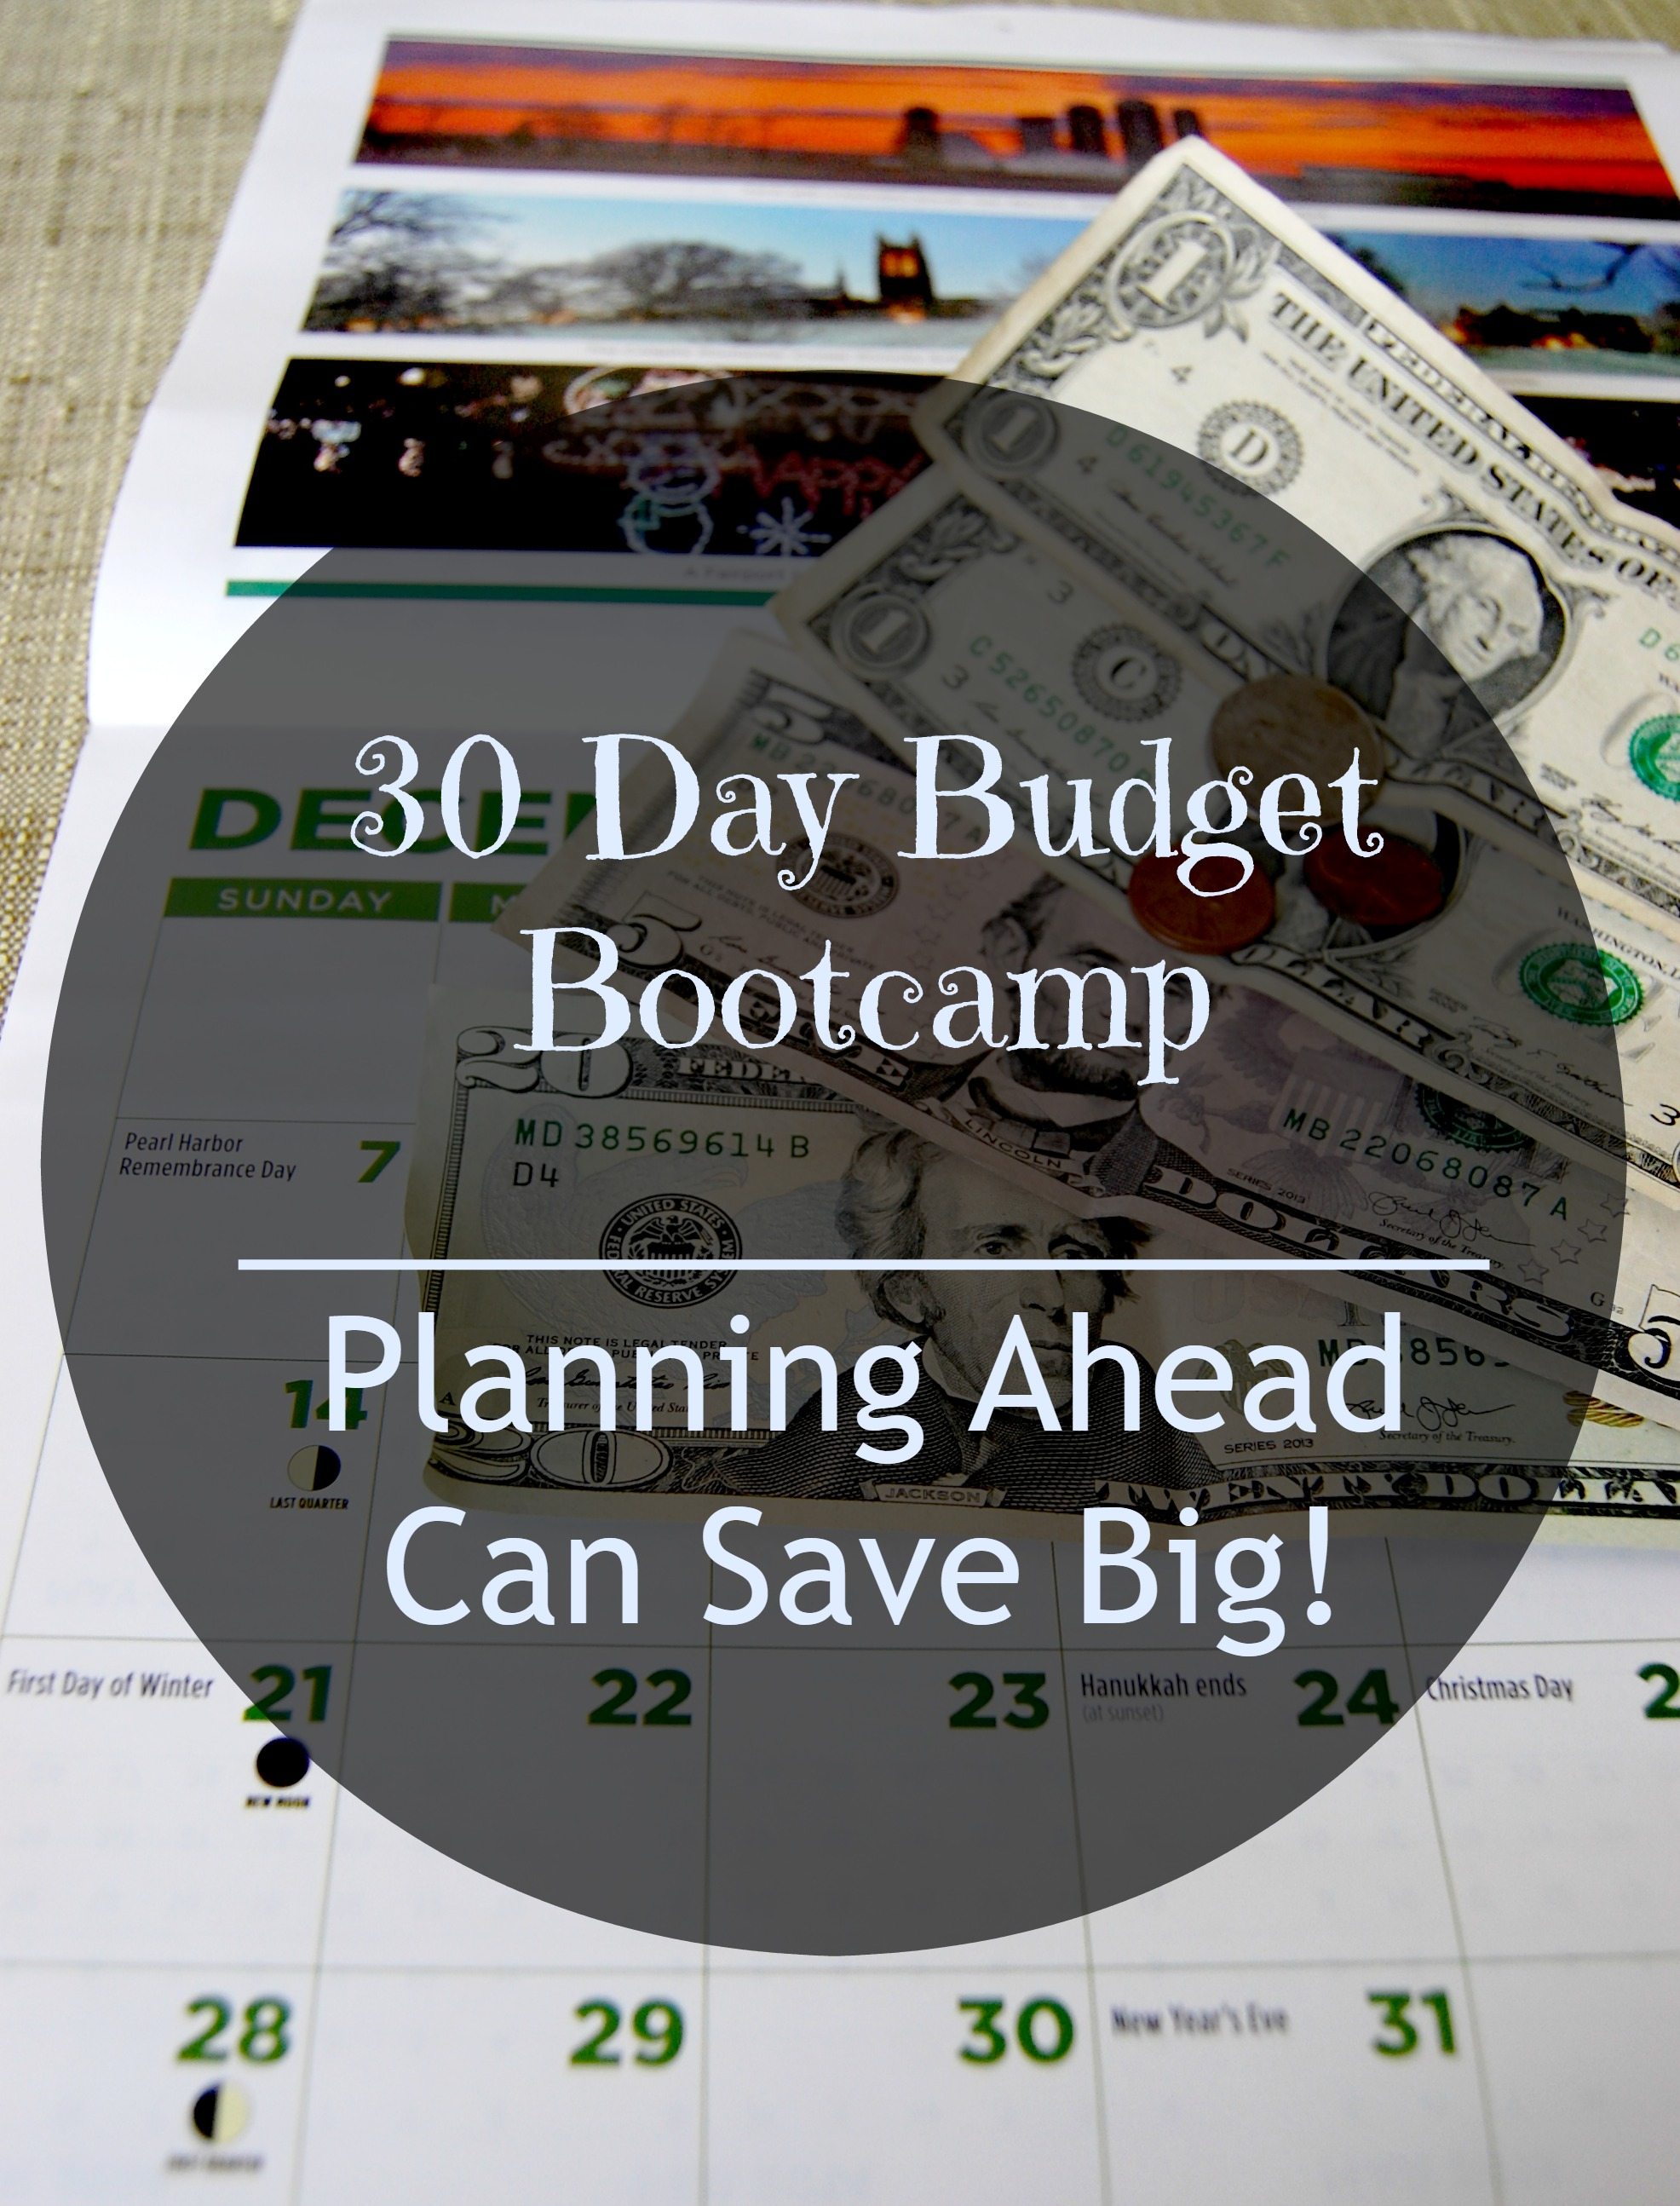 20 Day Budget Bootcamp: Planning Ahead Can Save Big! See how you can save money on things like gifts and groceries by these simple tips in planning ahead! Great Budgeting Tips!